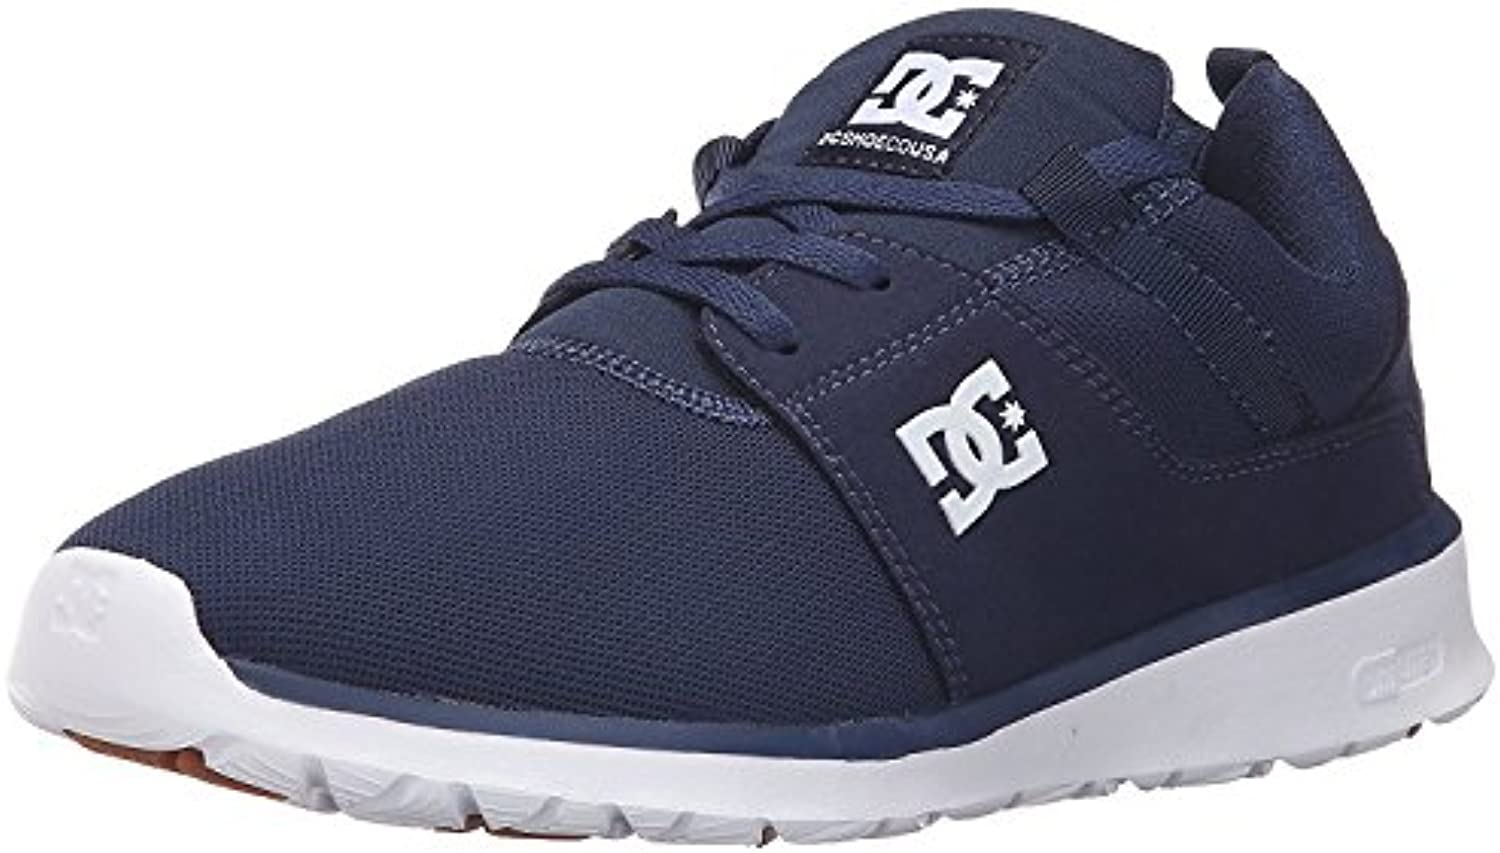 DC Men's Heathrow Casual Skate Shoe, Marino, 44.5 unknown EU/10 unknown UK